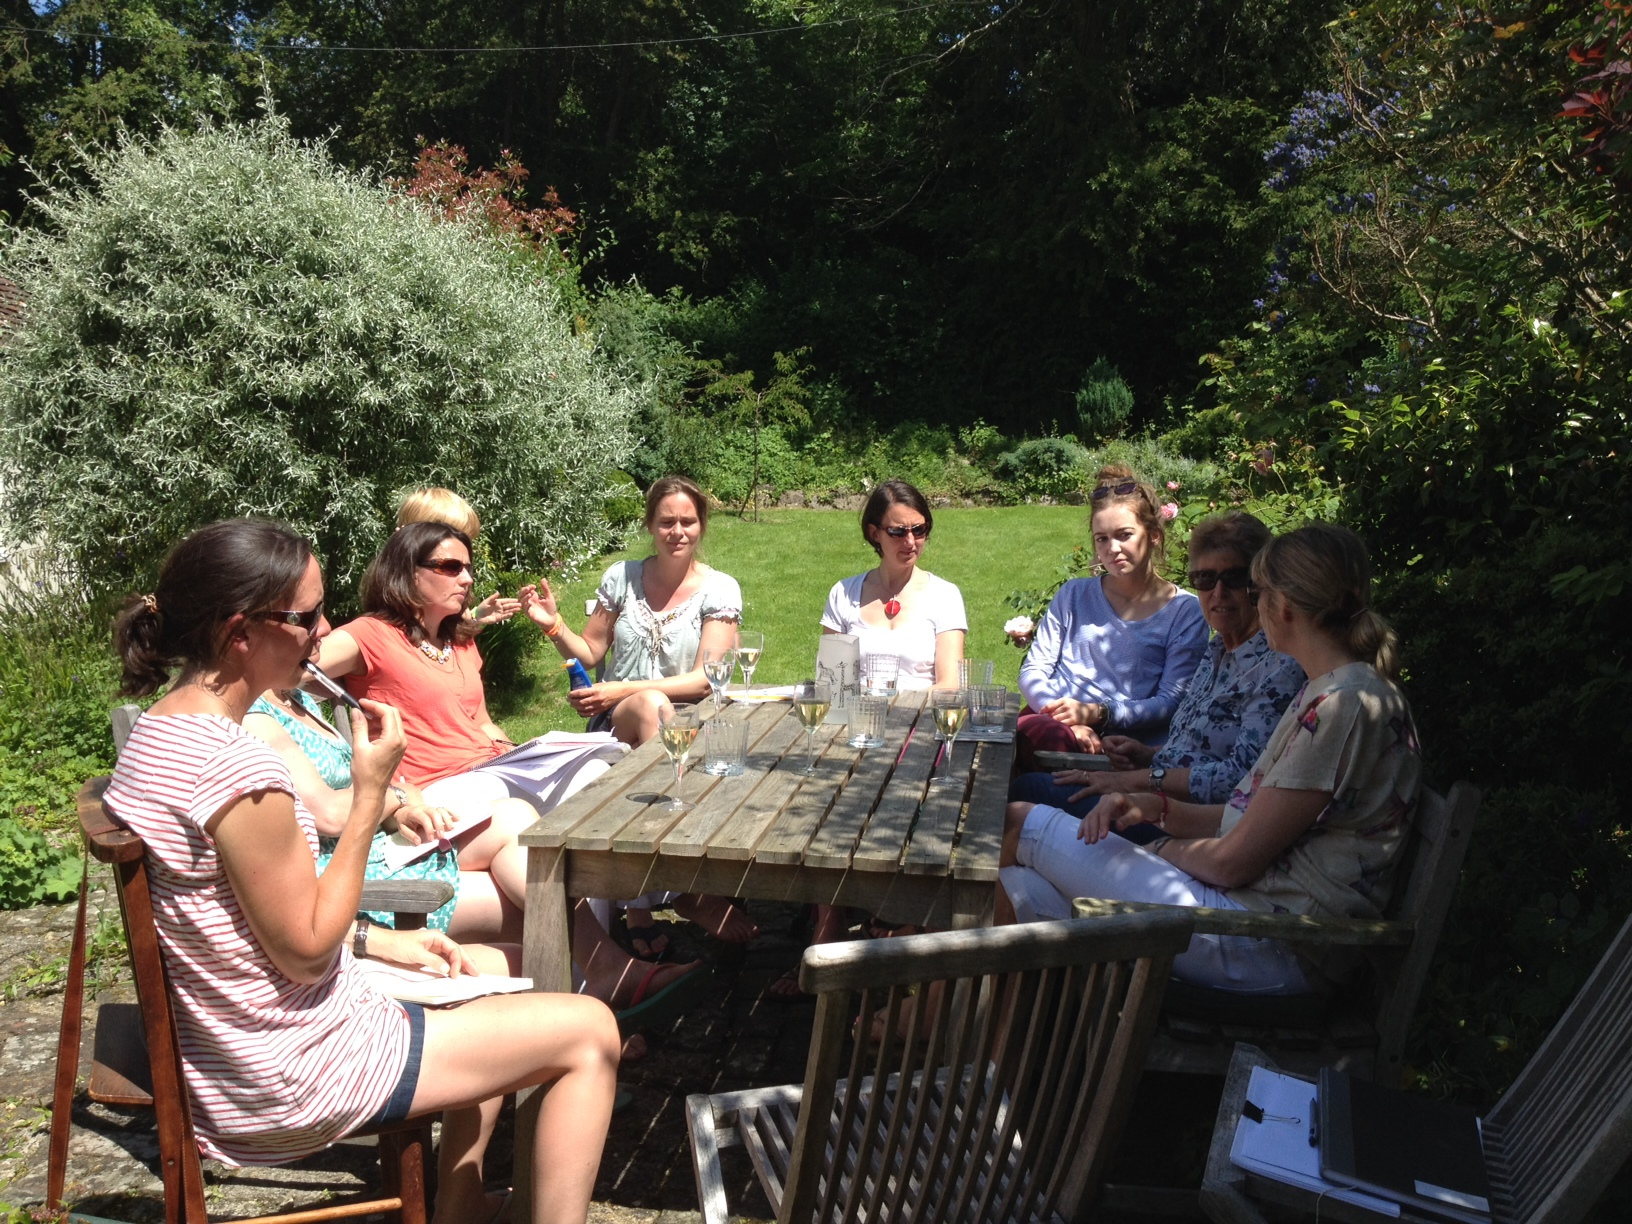 Friends of Sophie's Fund planning the fun day in September.